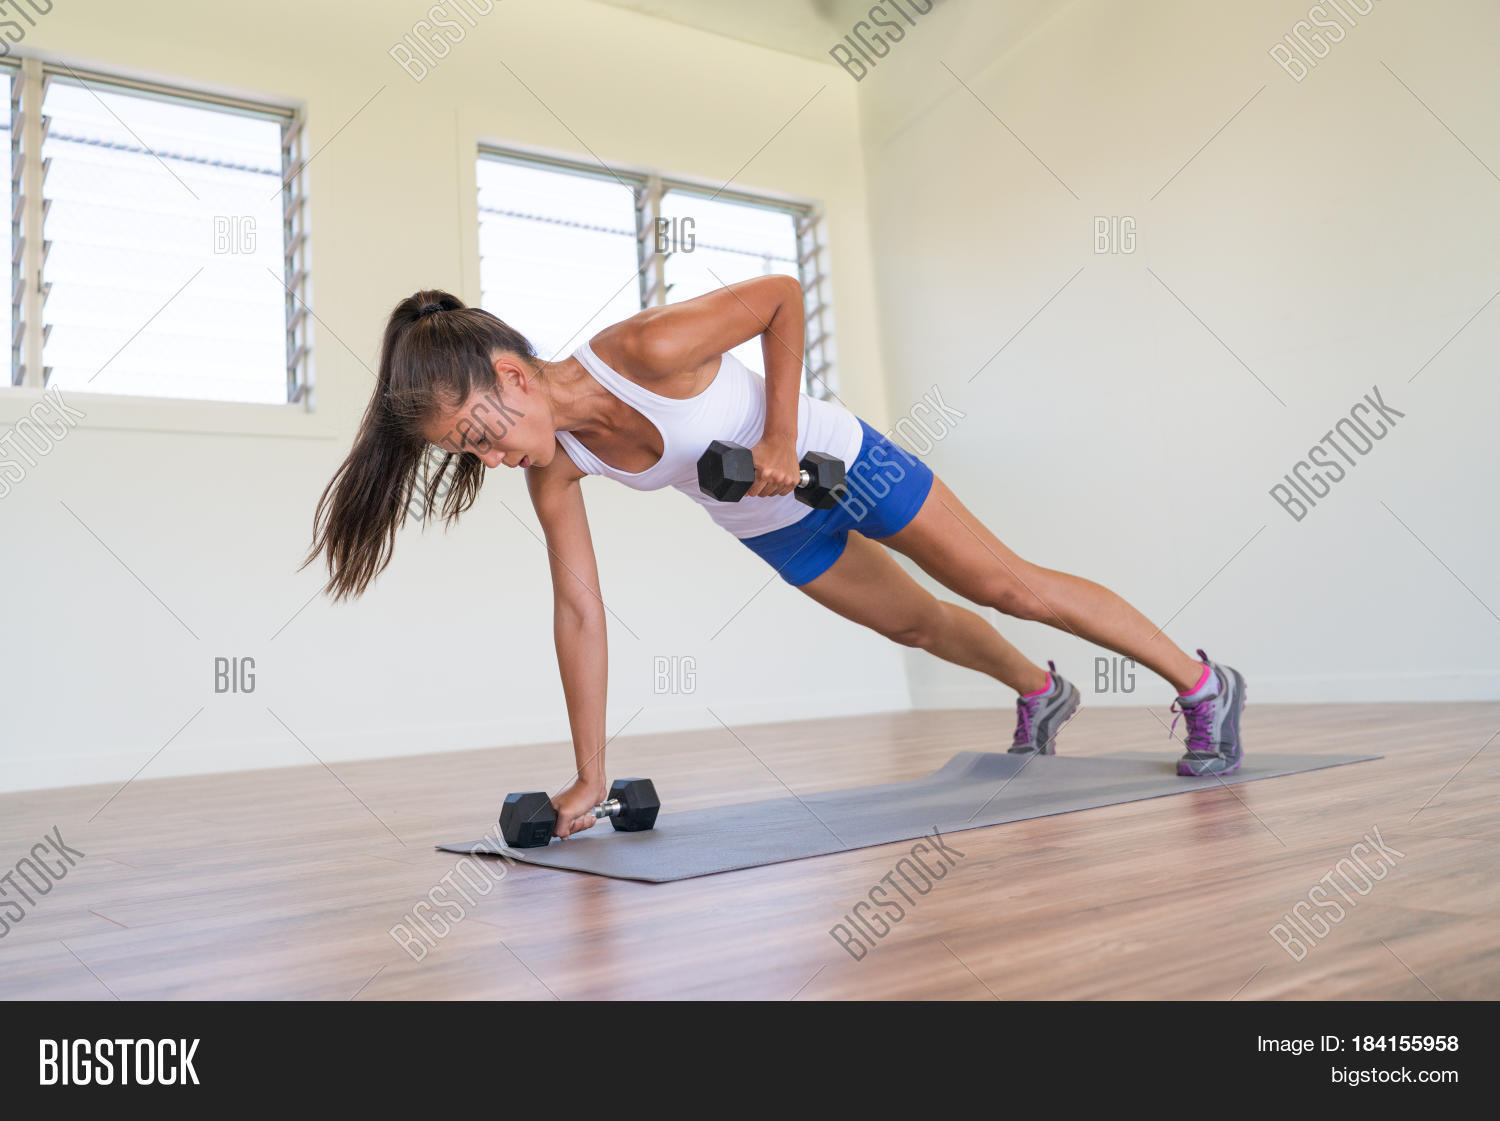 Fitness girl doing dumbbells plank image photo bigstock for Floor workout